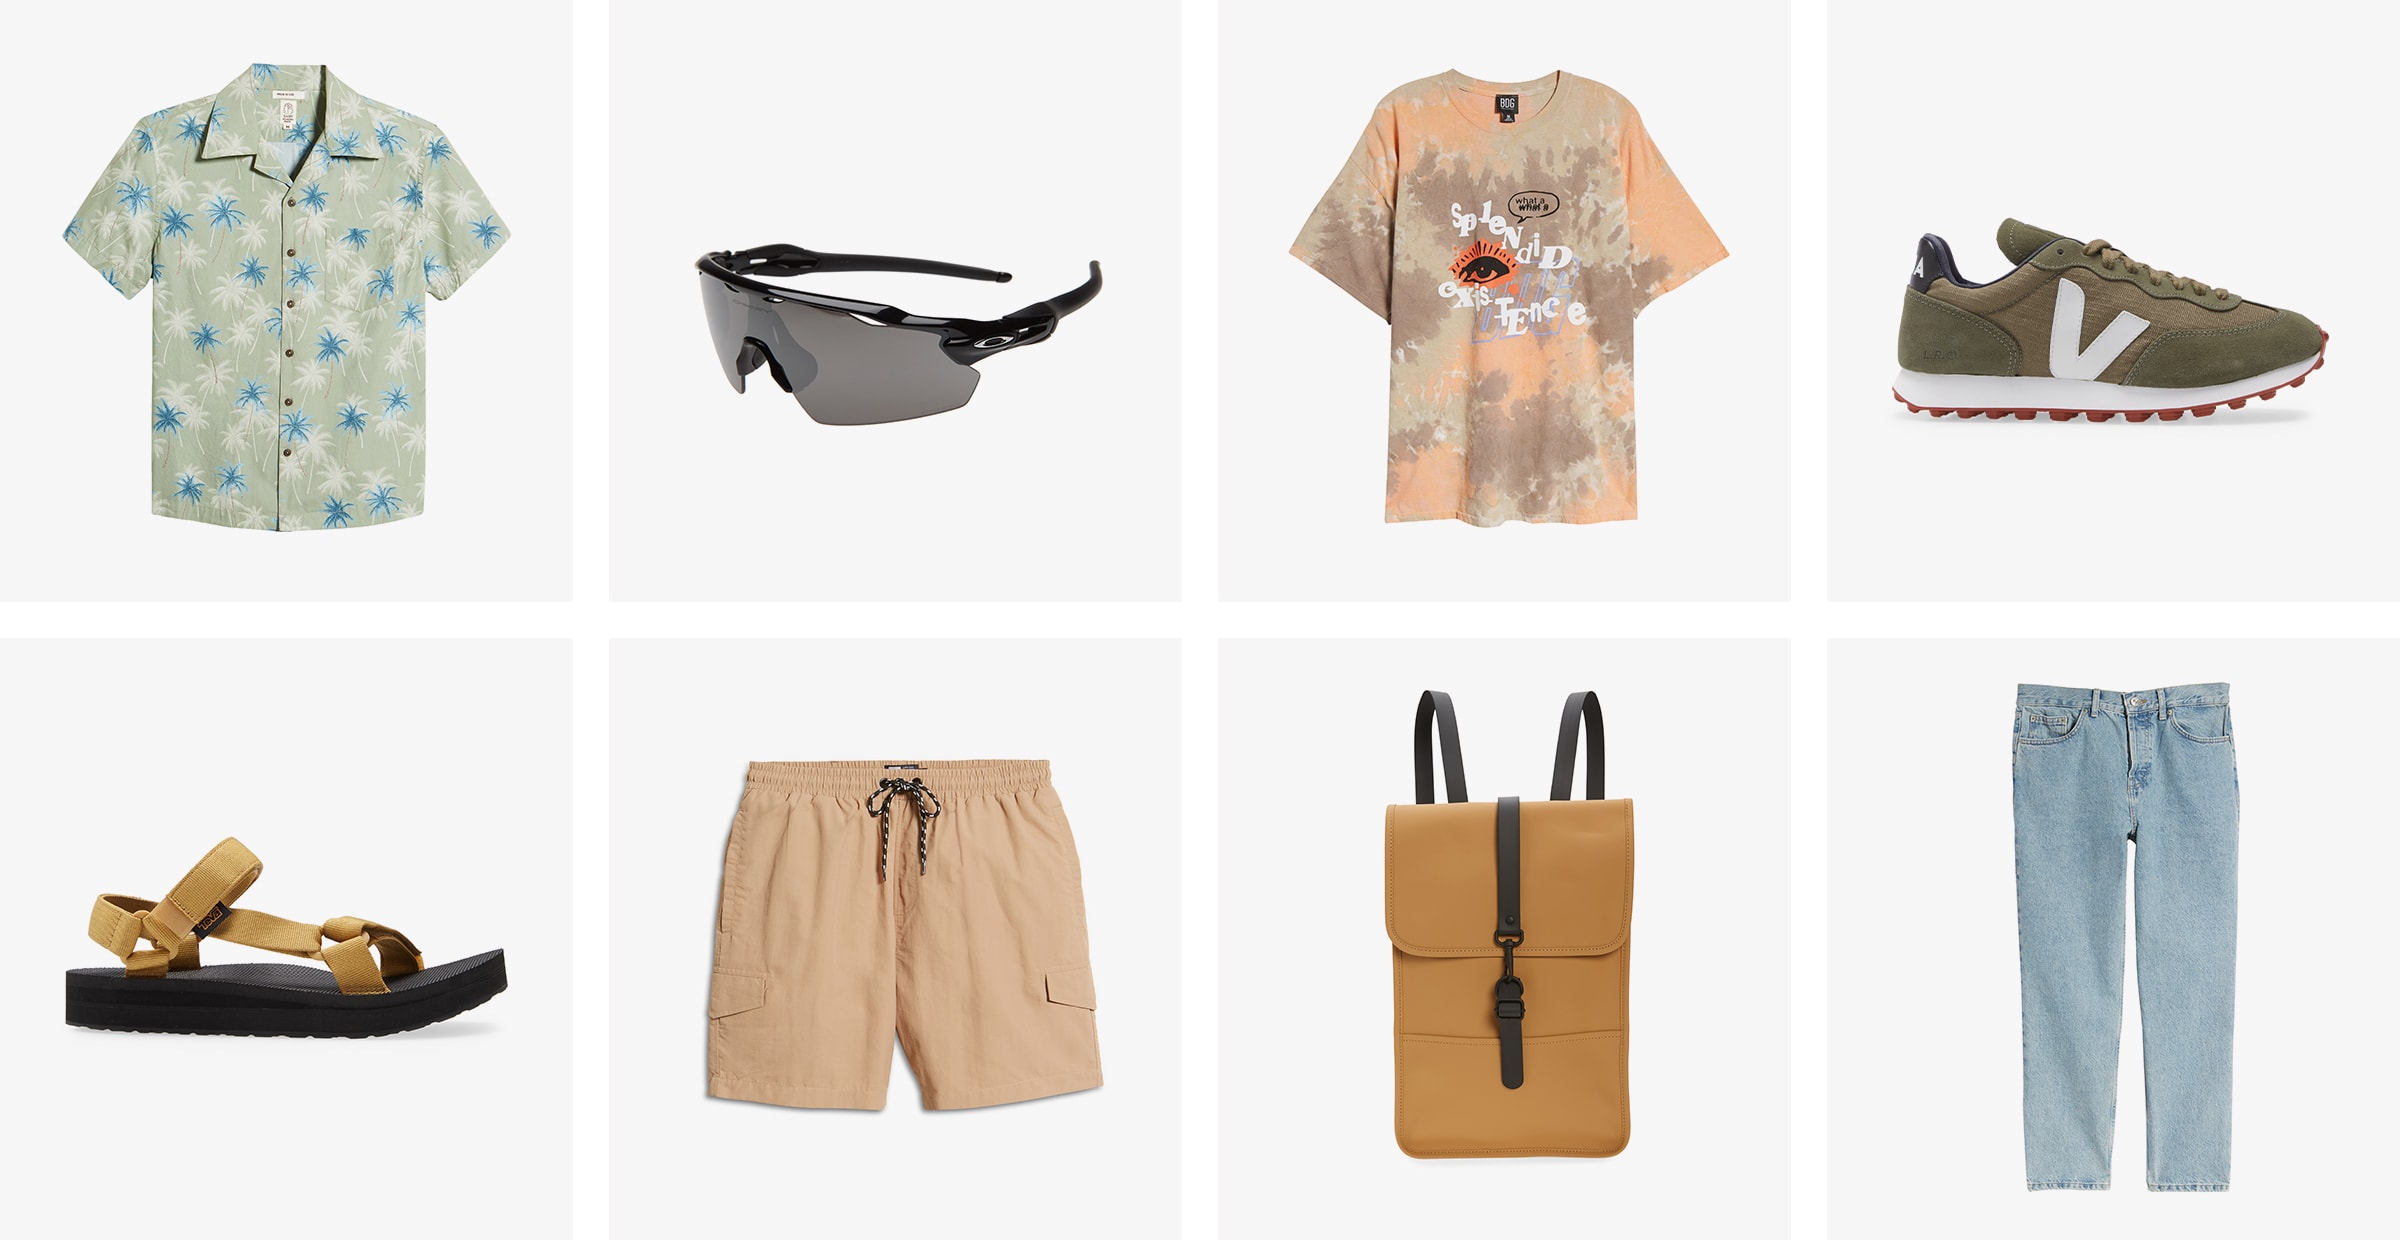 A men's printed button-up, sunglasses, graphic tee, sneakers, sandals, brown shorts, backpack and light-wash jeans.